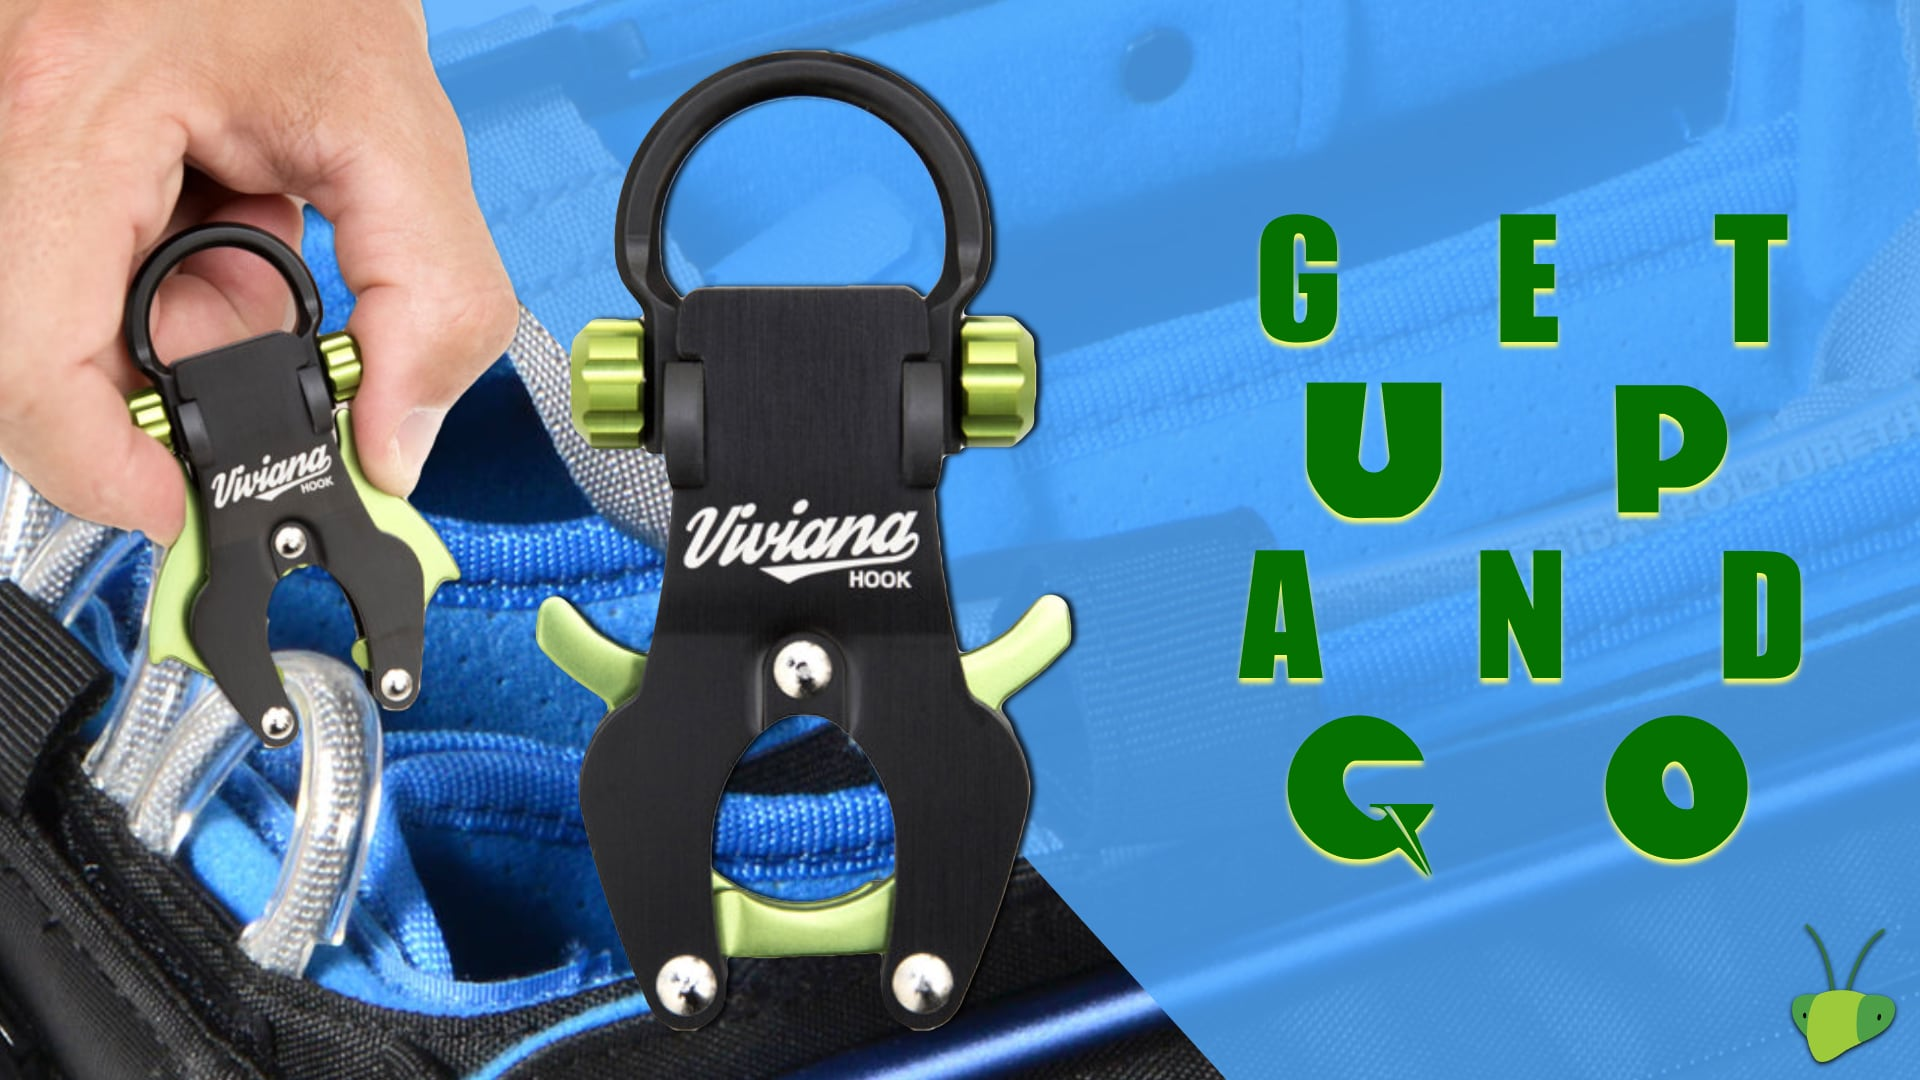 The Viviana Hook is the fastest way to get a Harness on an off an ENG Bag